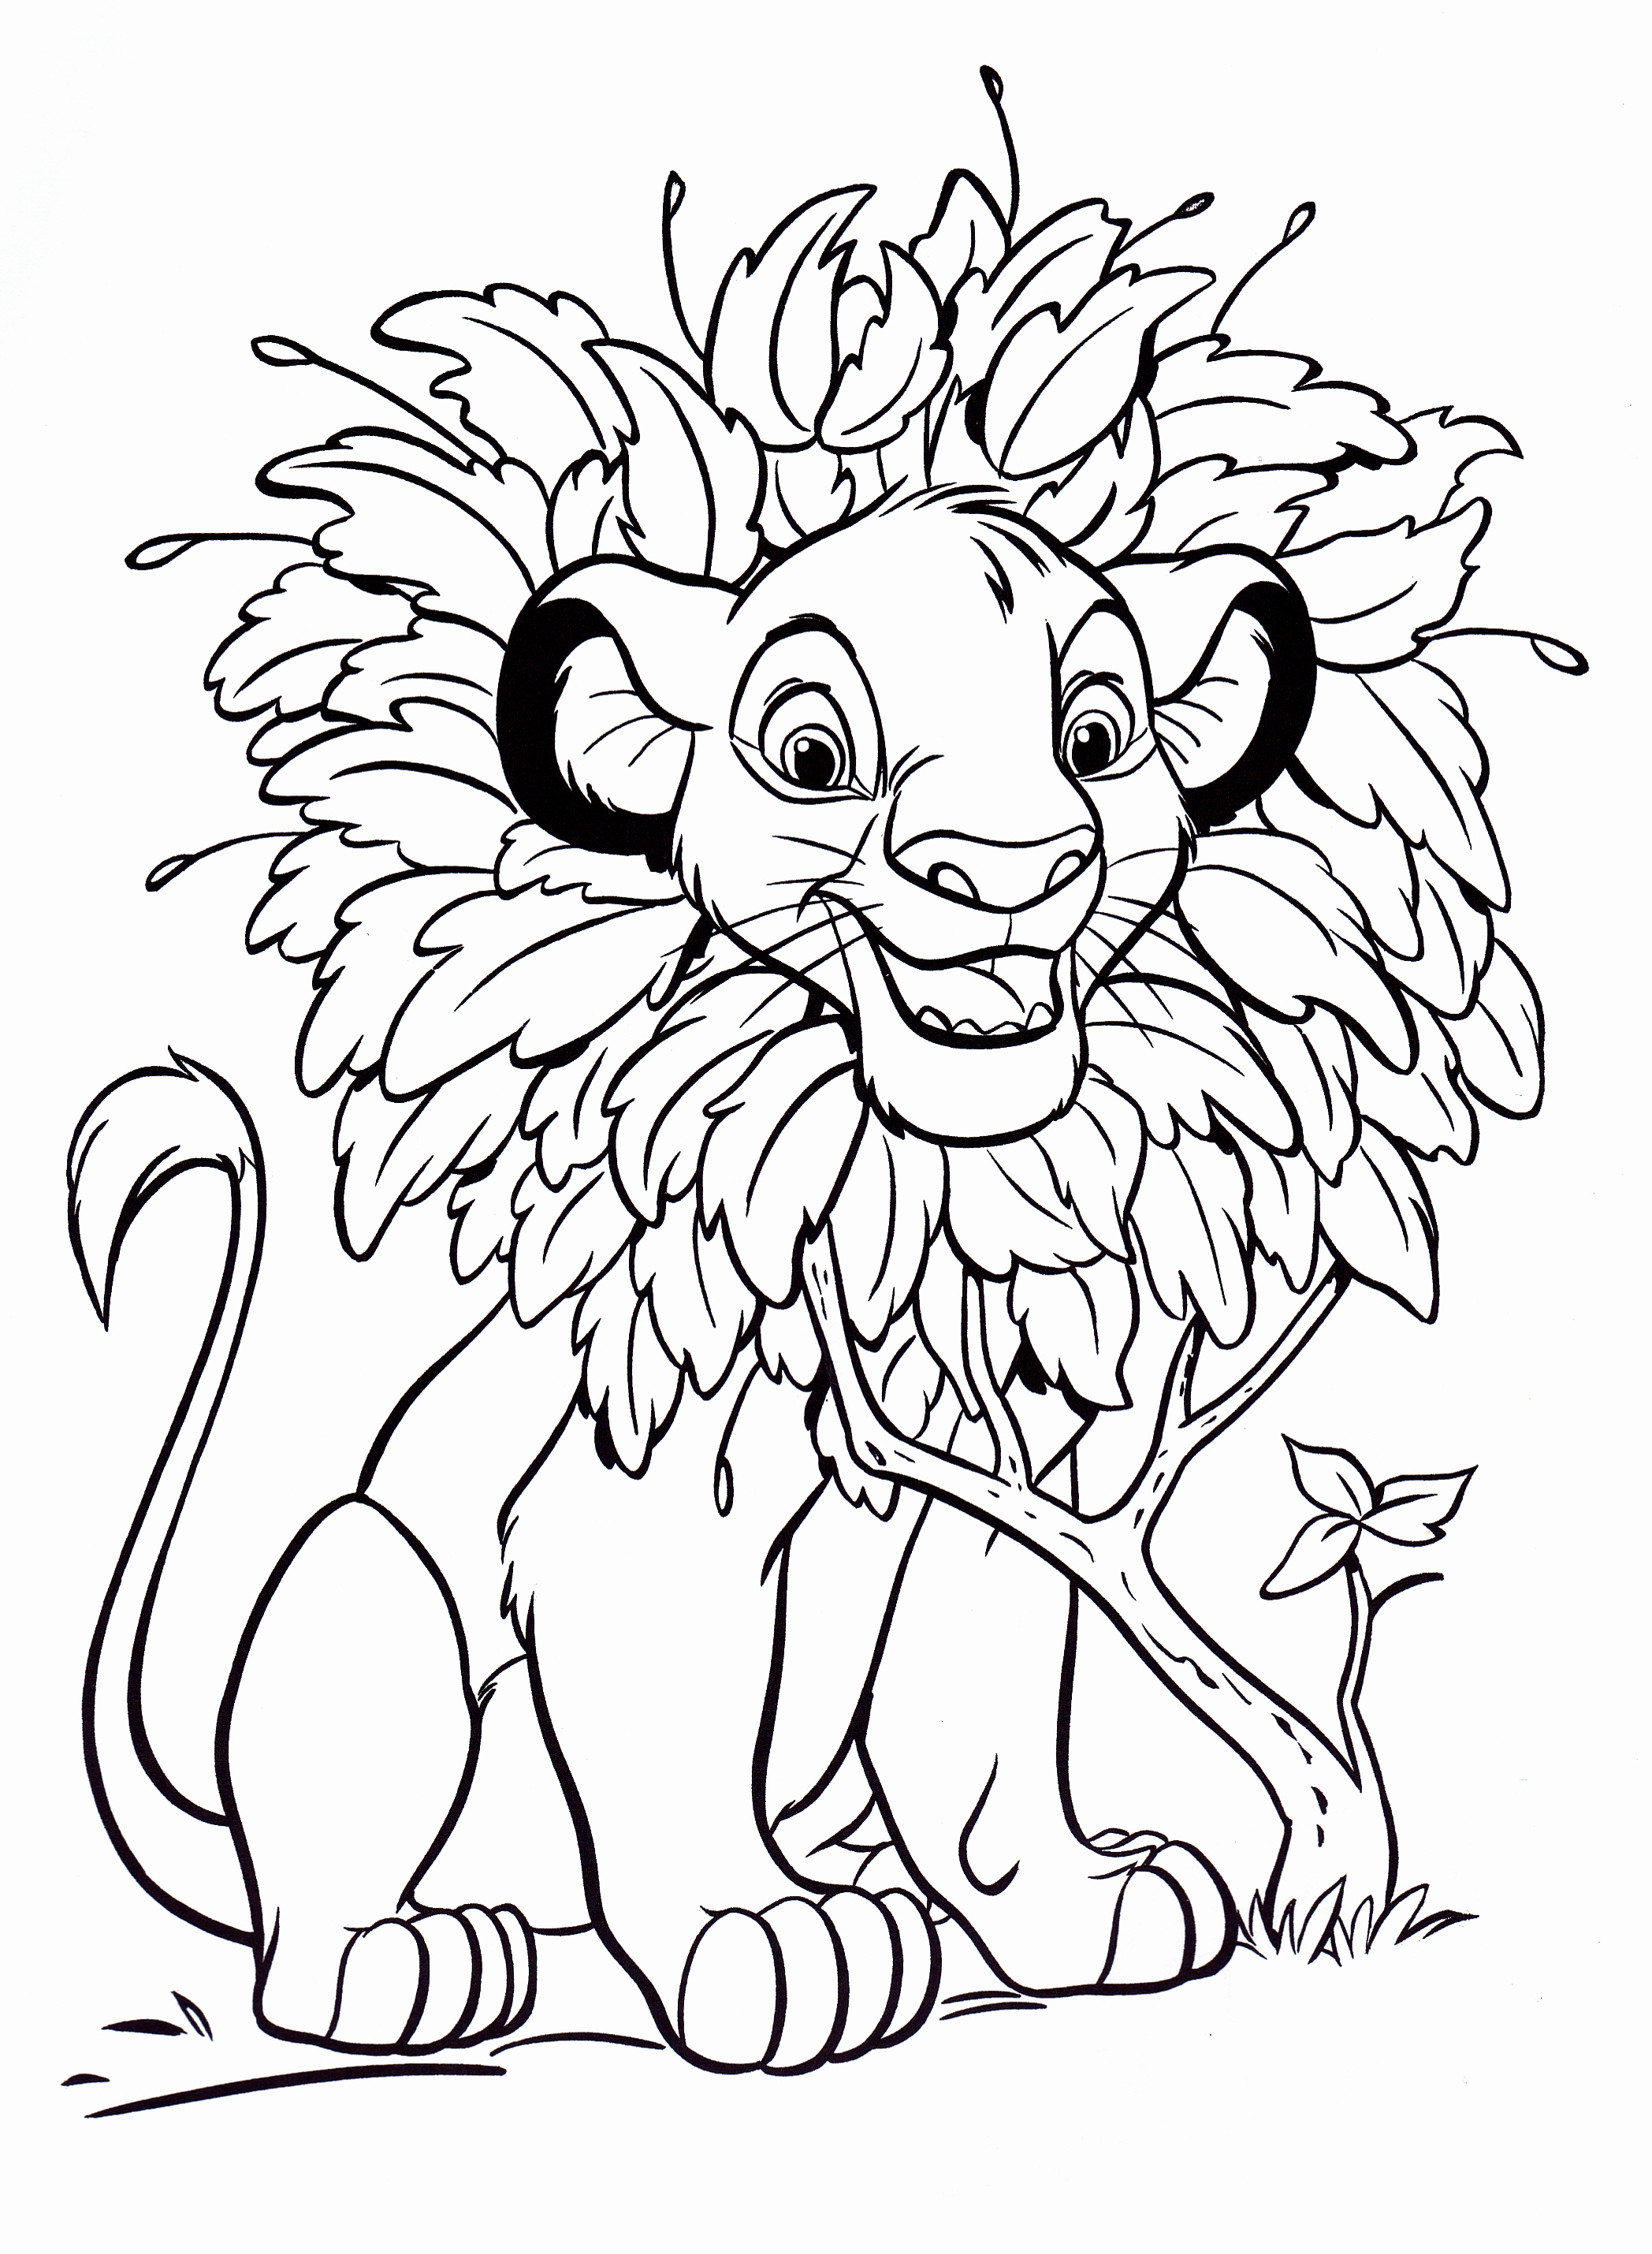 childrens disney coloring pages - photo#11